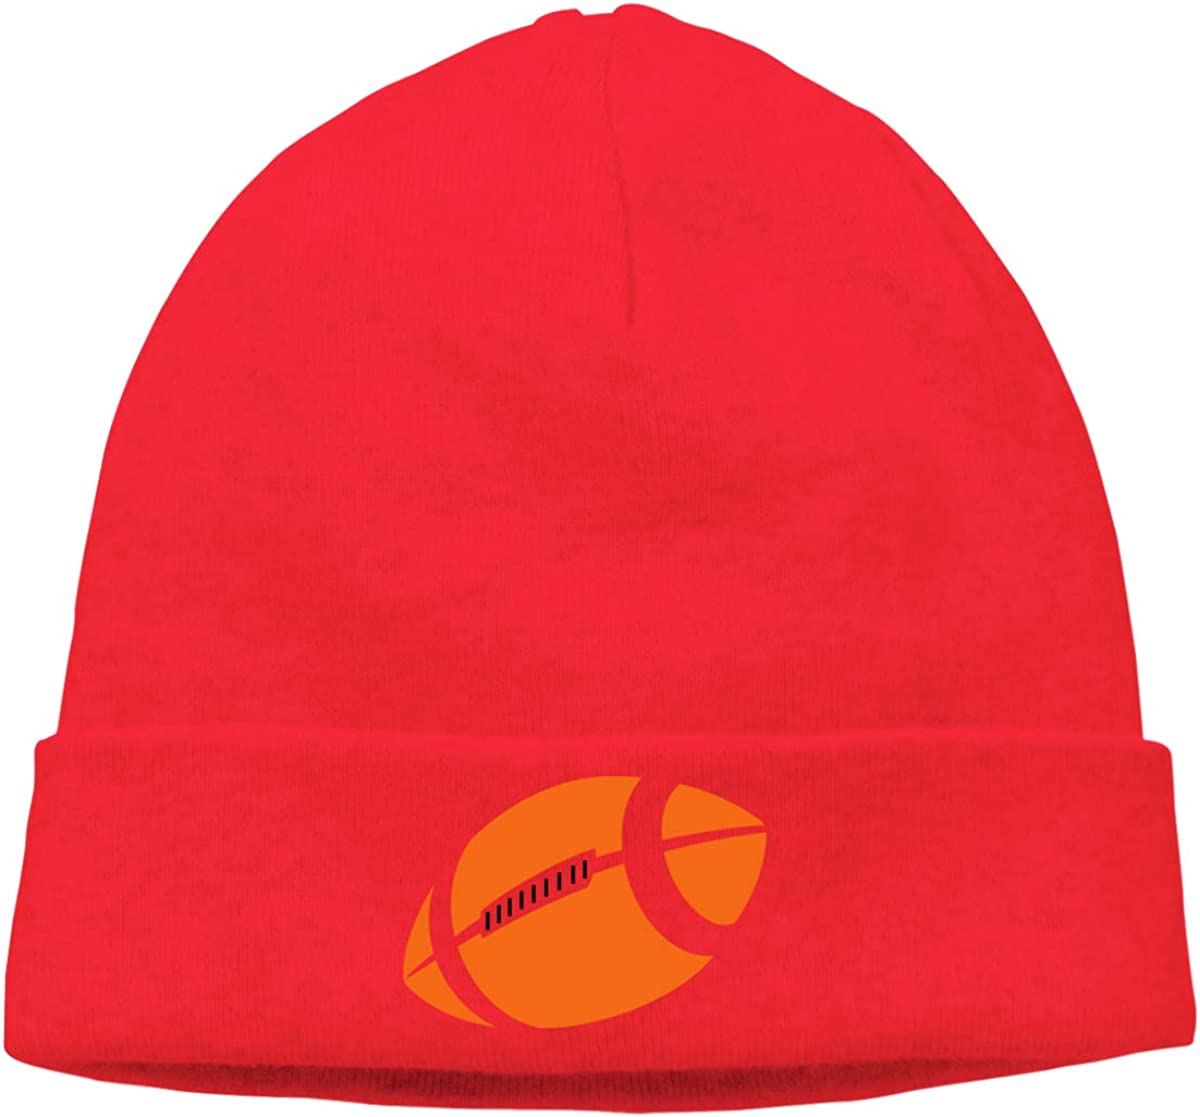 Year Round Comfort Stretchy /& Soft Beanie Hats for Men /& Women Serious Beanies for Serious Style Kljdiasjw Football Warm